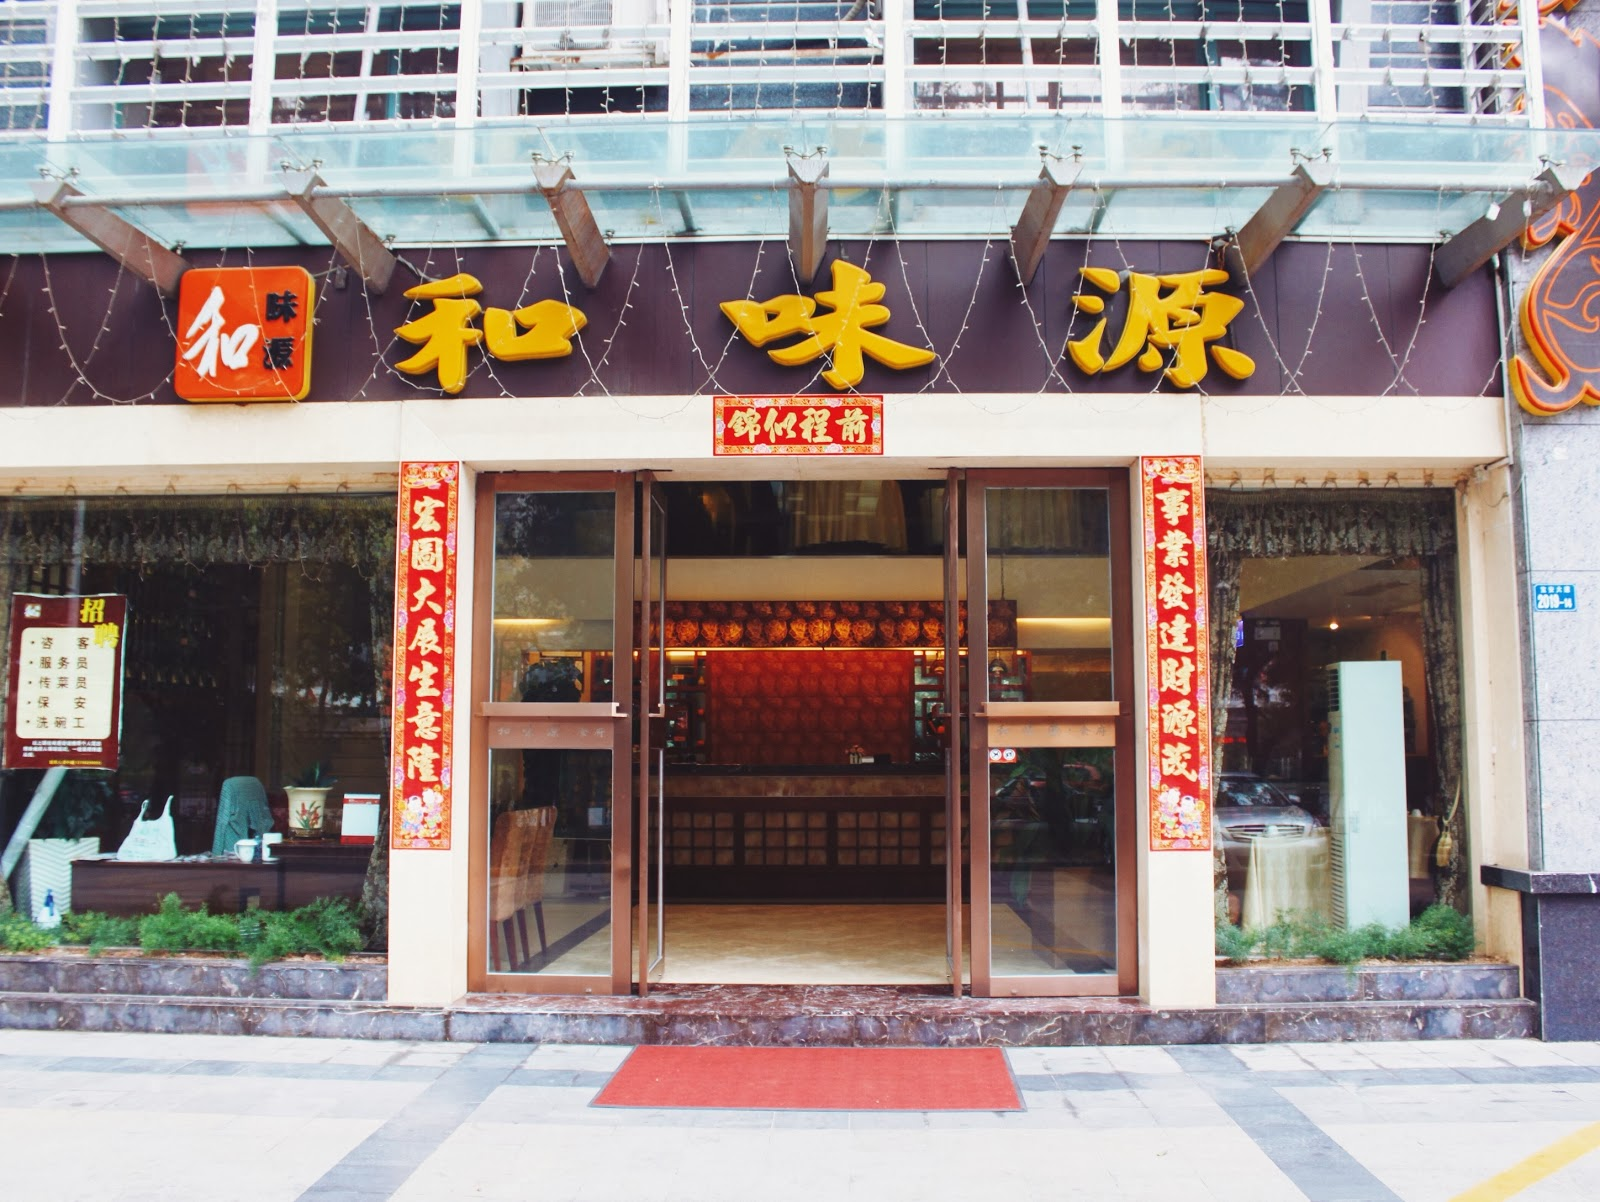 和味源食府 He Wei Yuan Restaurant @ 中国广东深圳宝安中心 Bao'an, Shenzhen, Guangdong, China